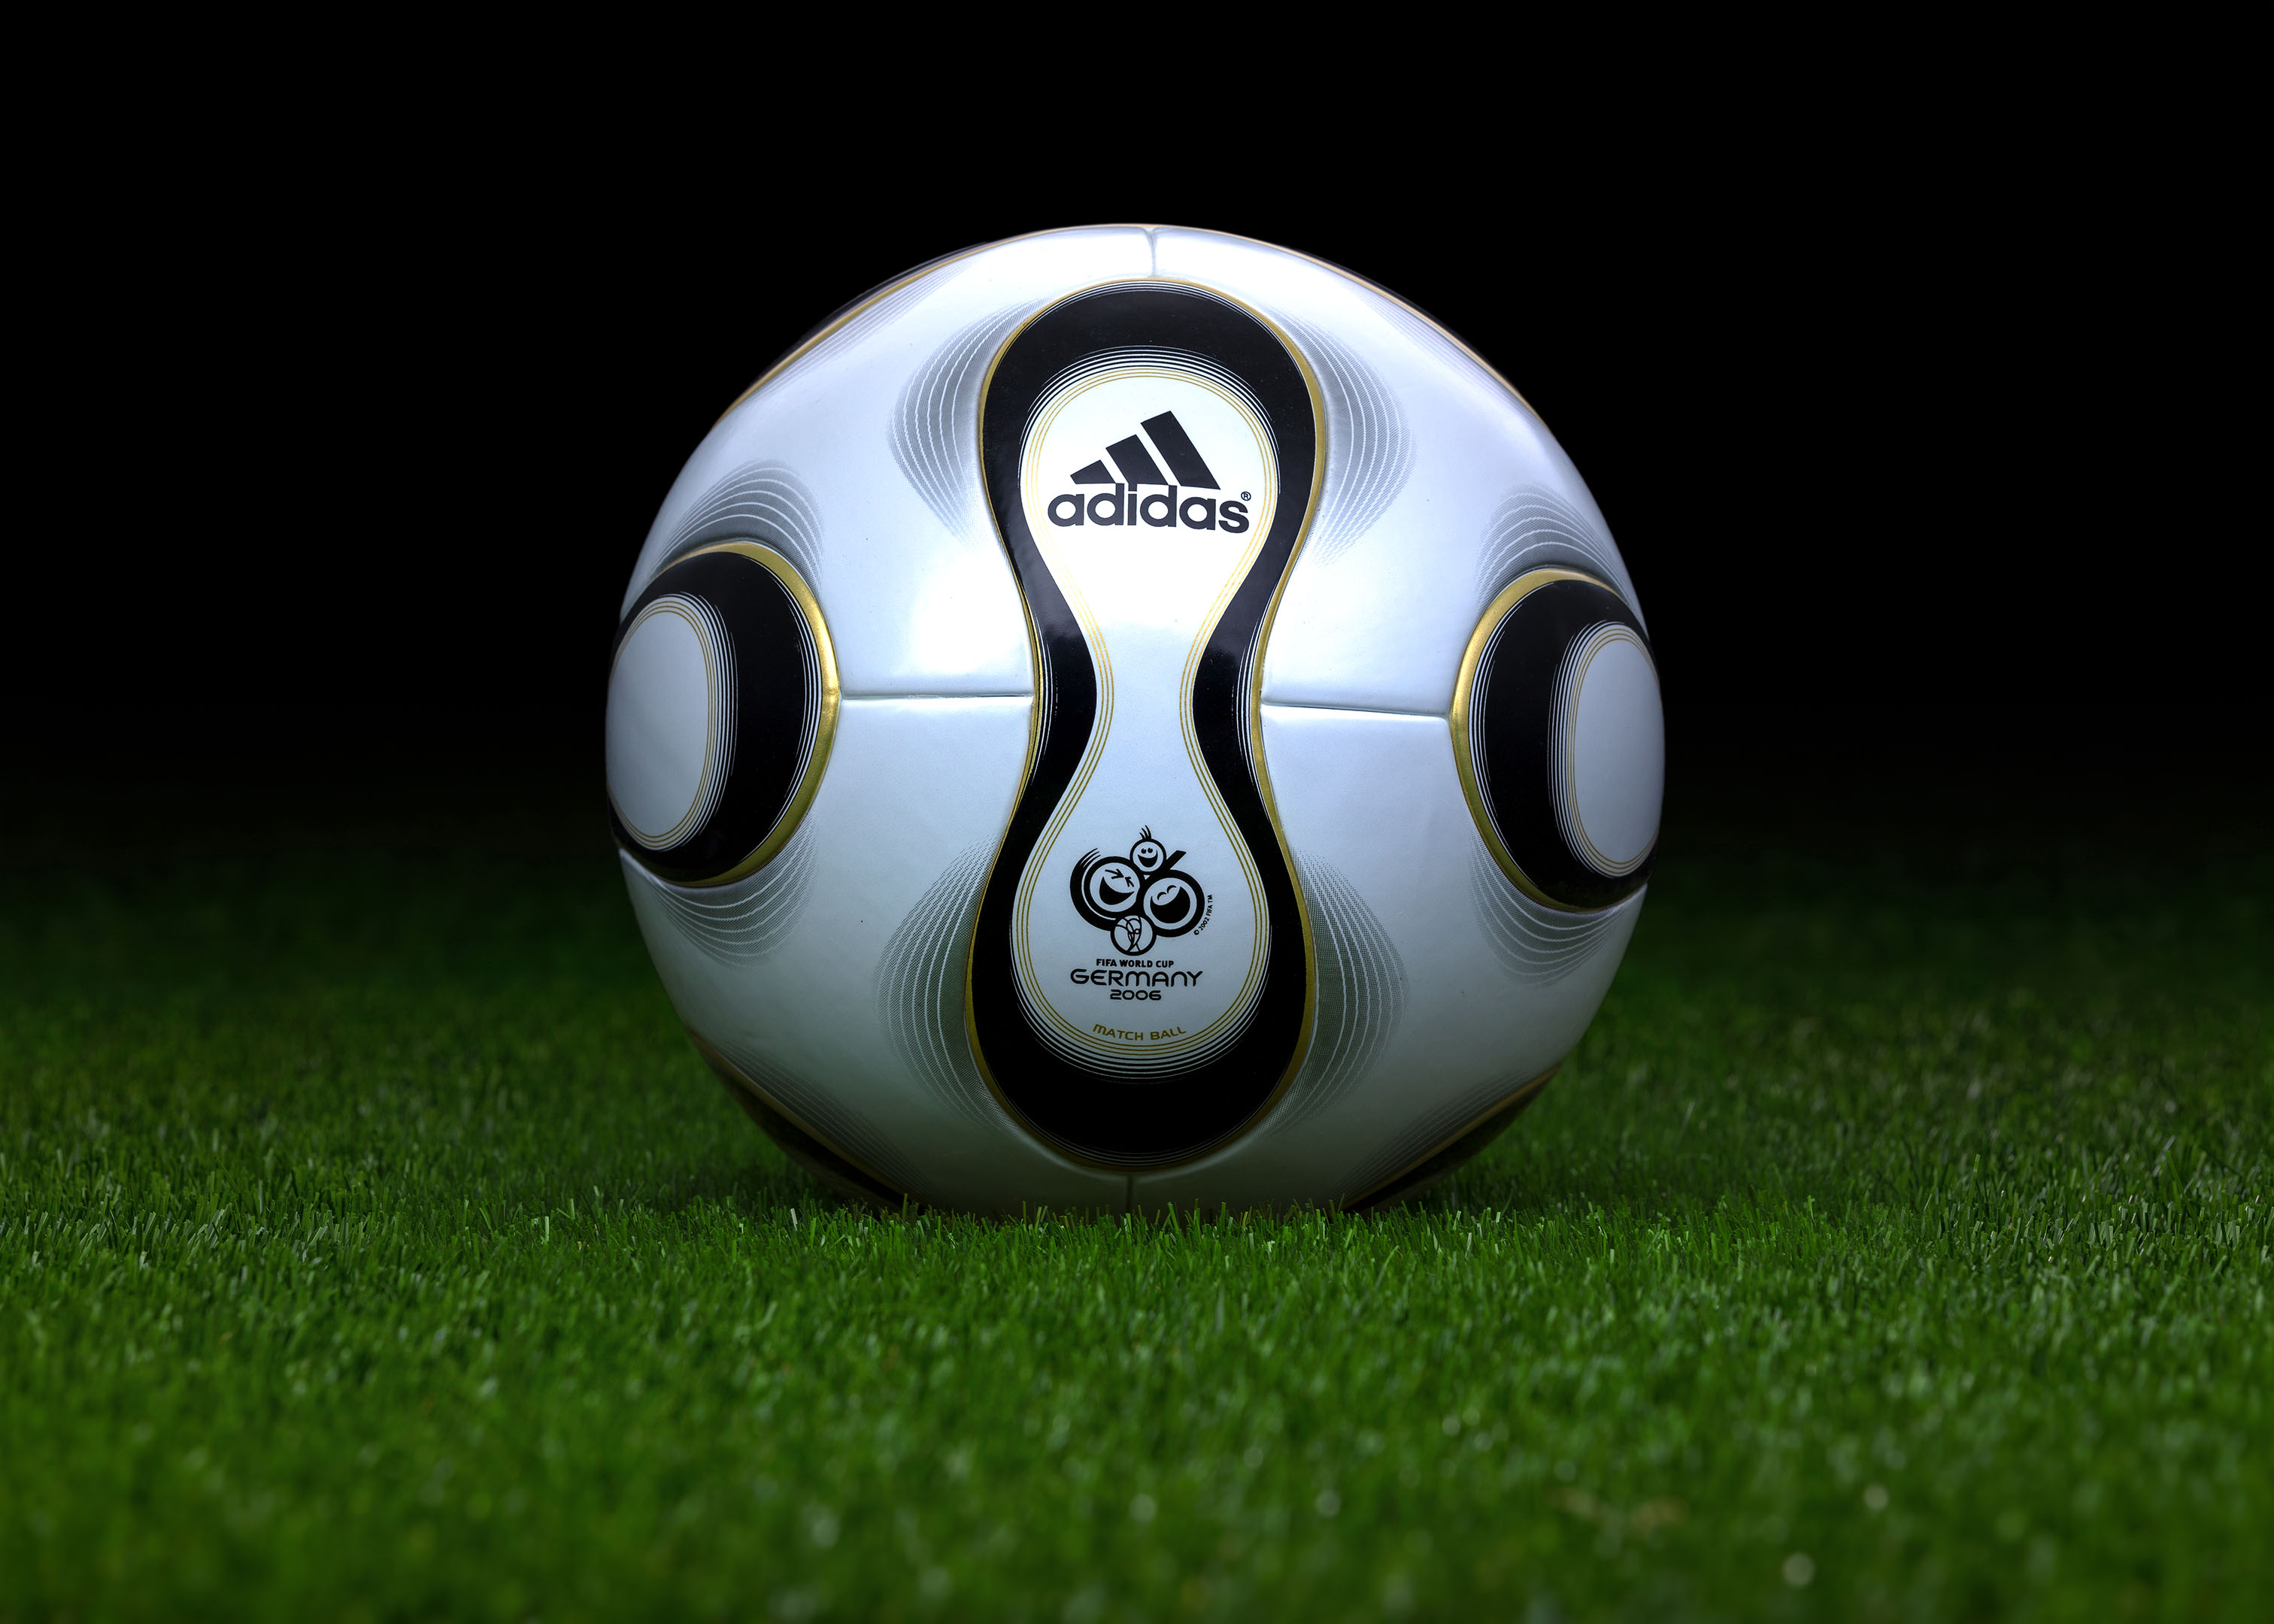 1c1b2937d Made in Thailand match ball. FIFA World Cup 2006 Germany. Adidas Teamgeist